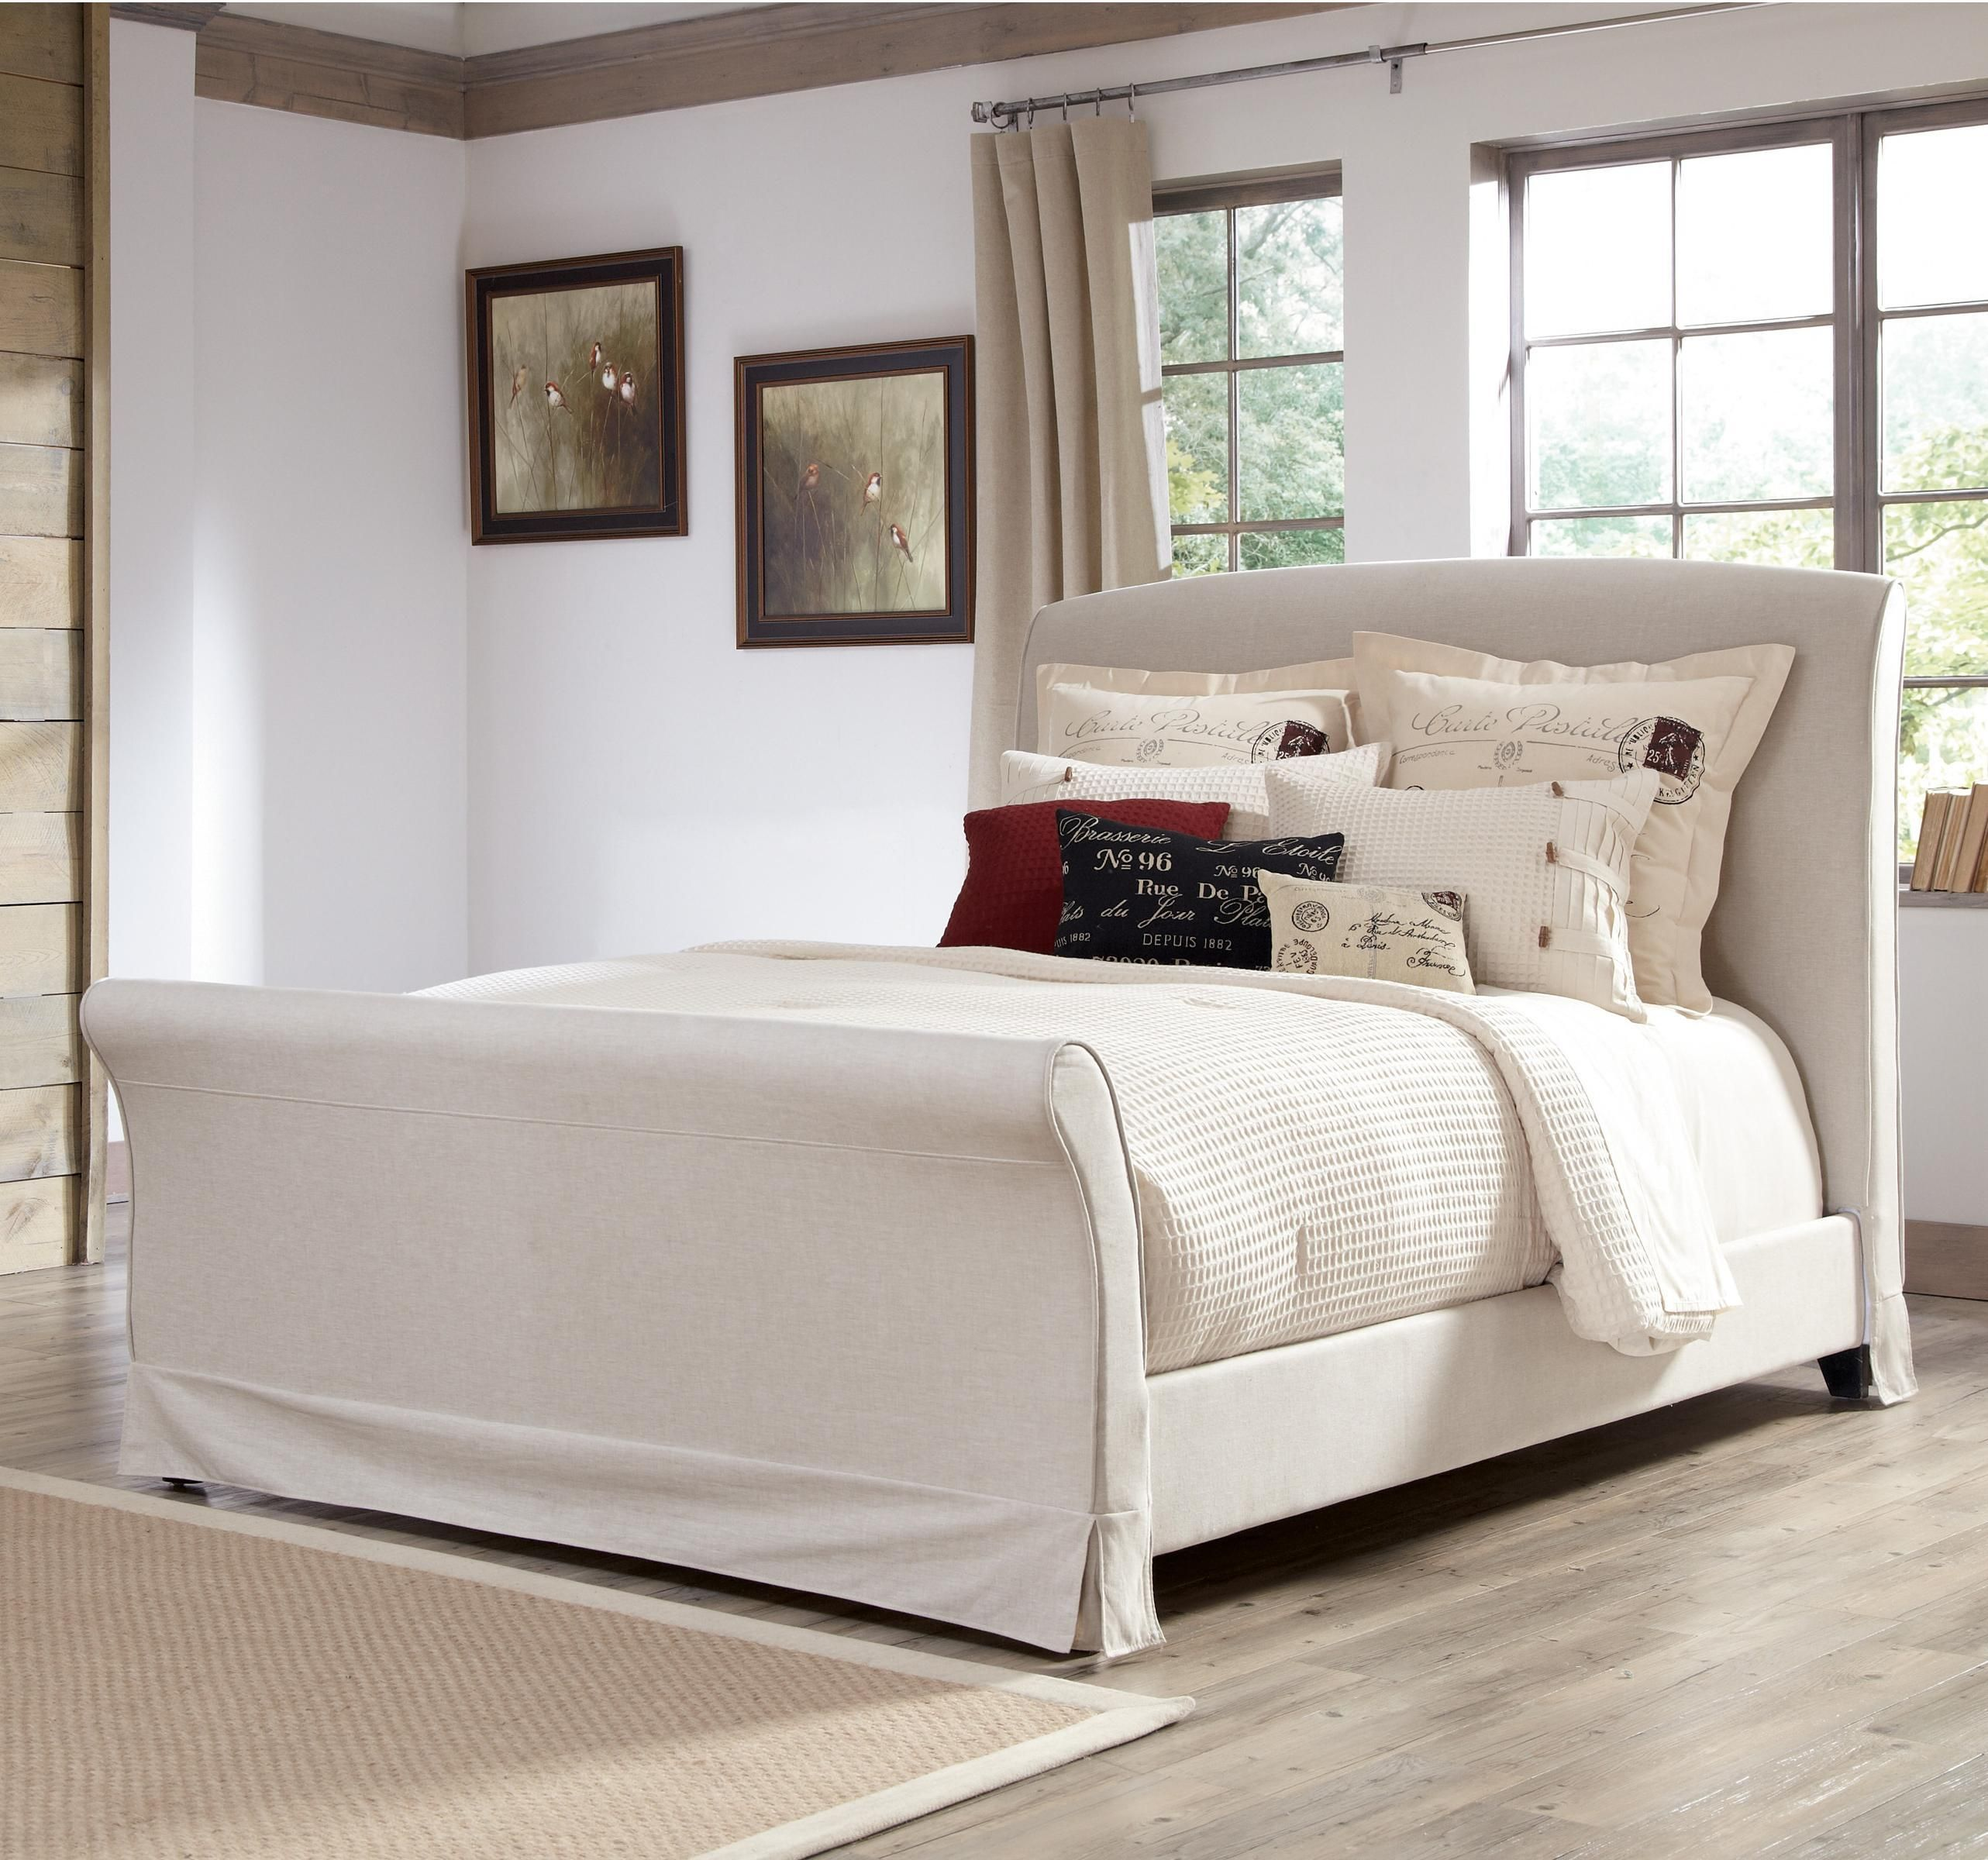 Slipcover For A Sleigh Bed Headboard